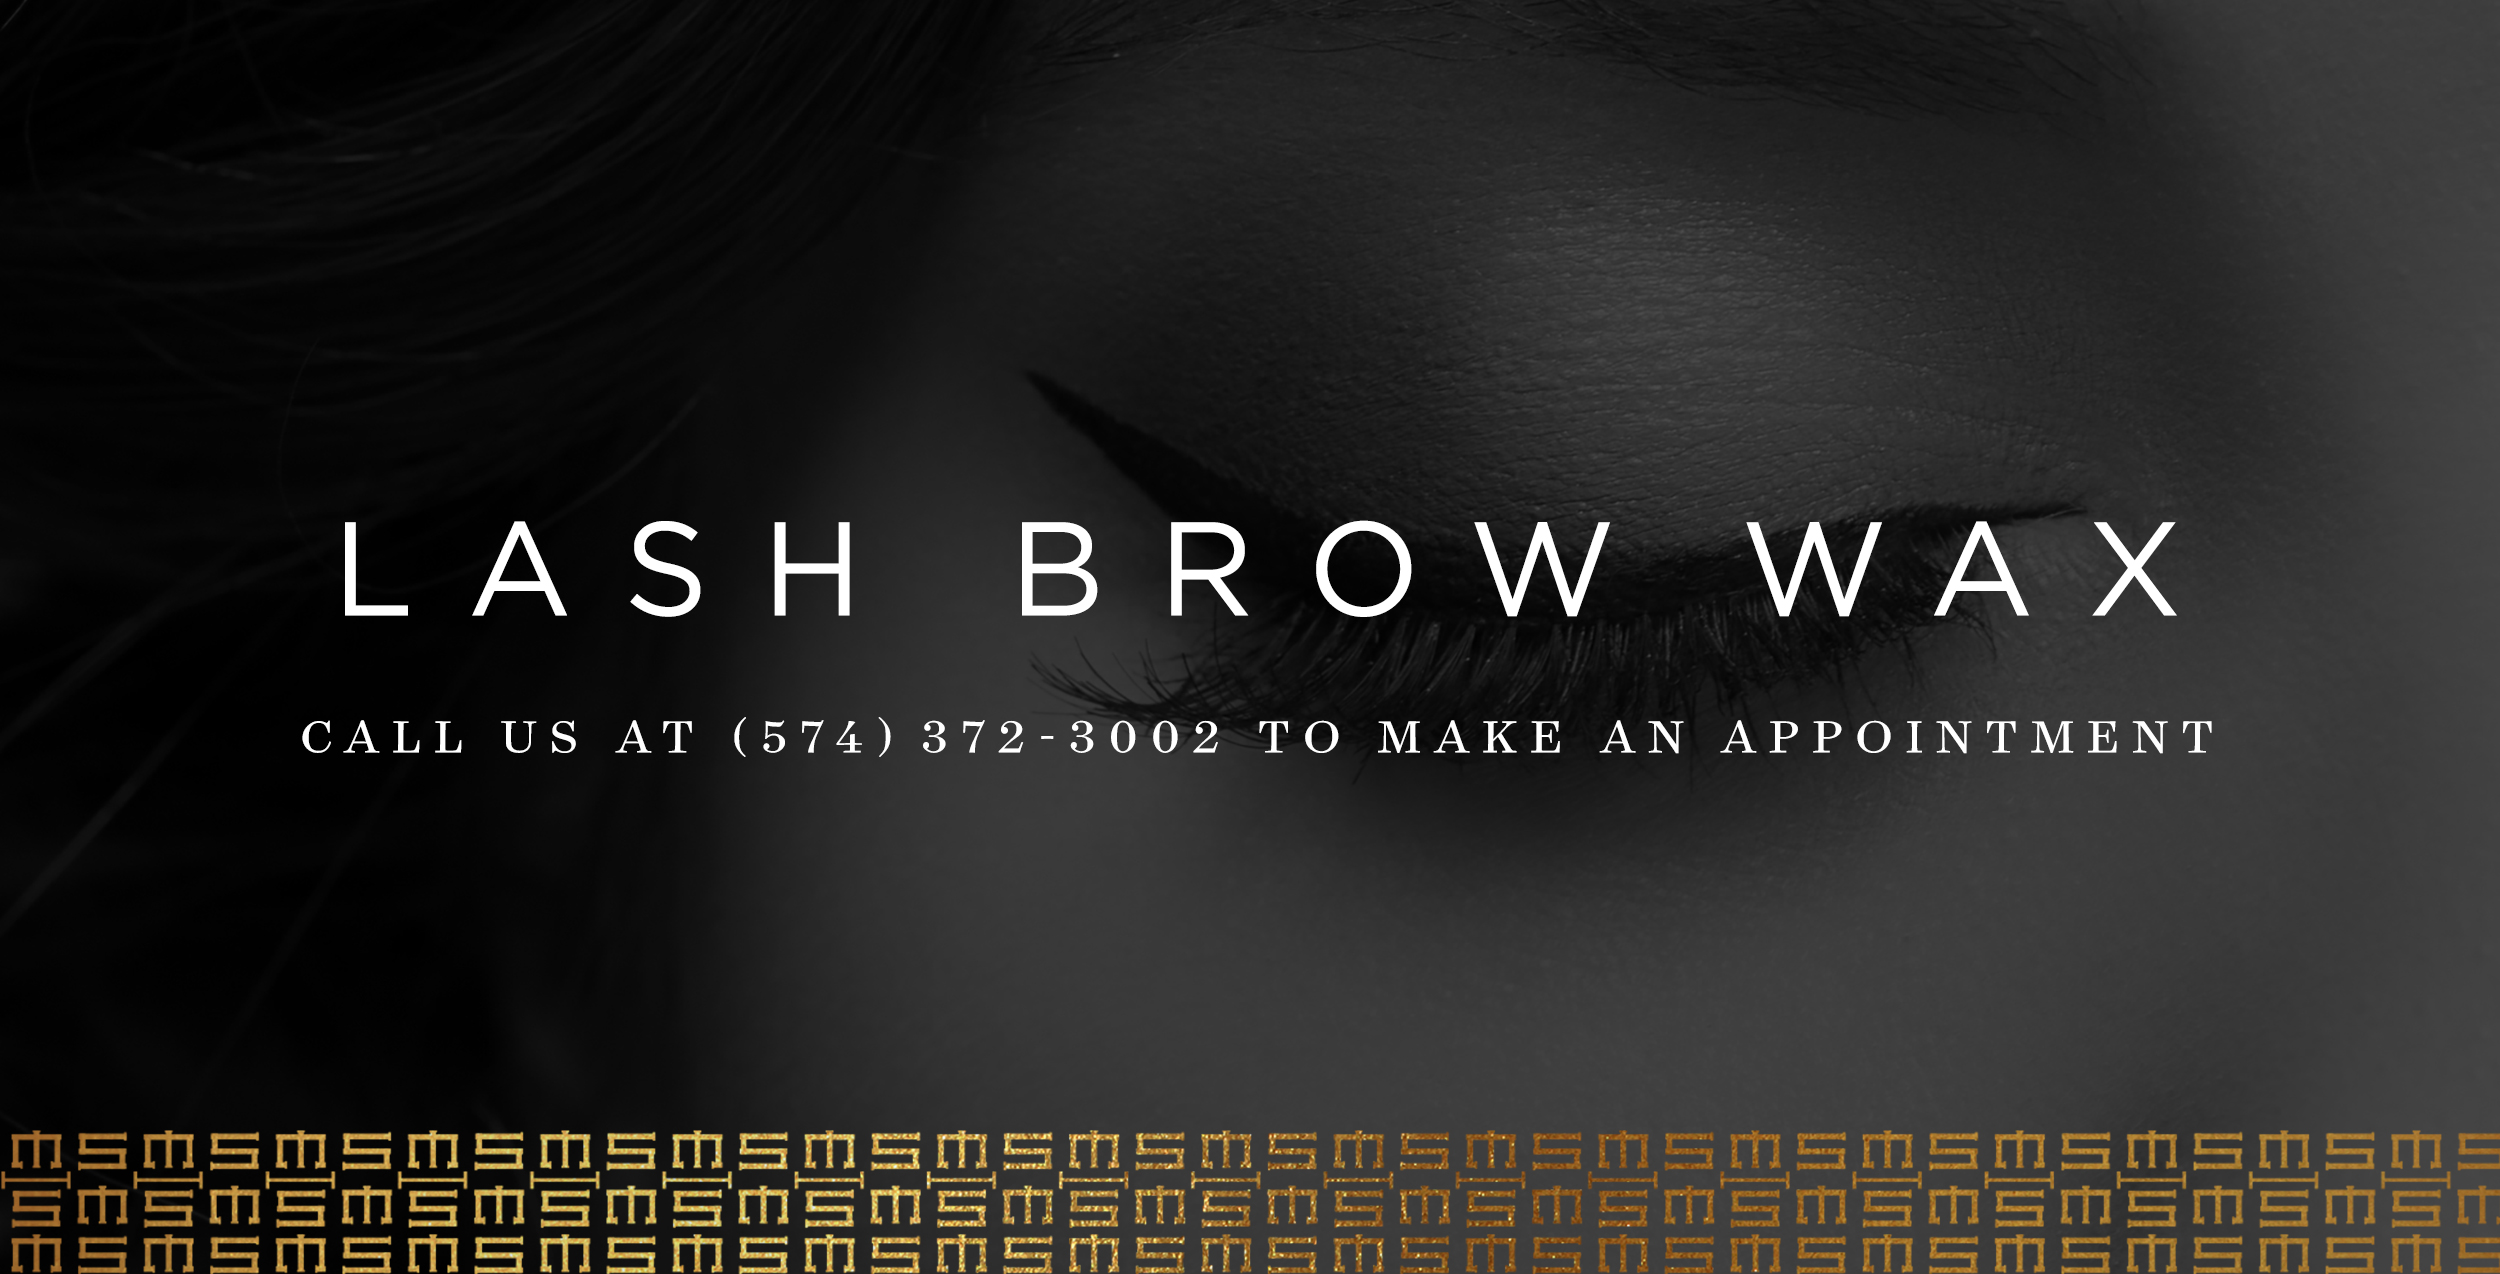 Lash Brow Wax